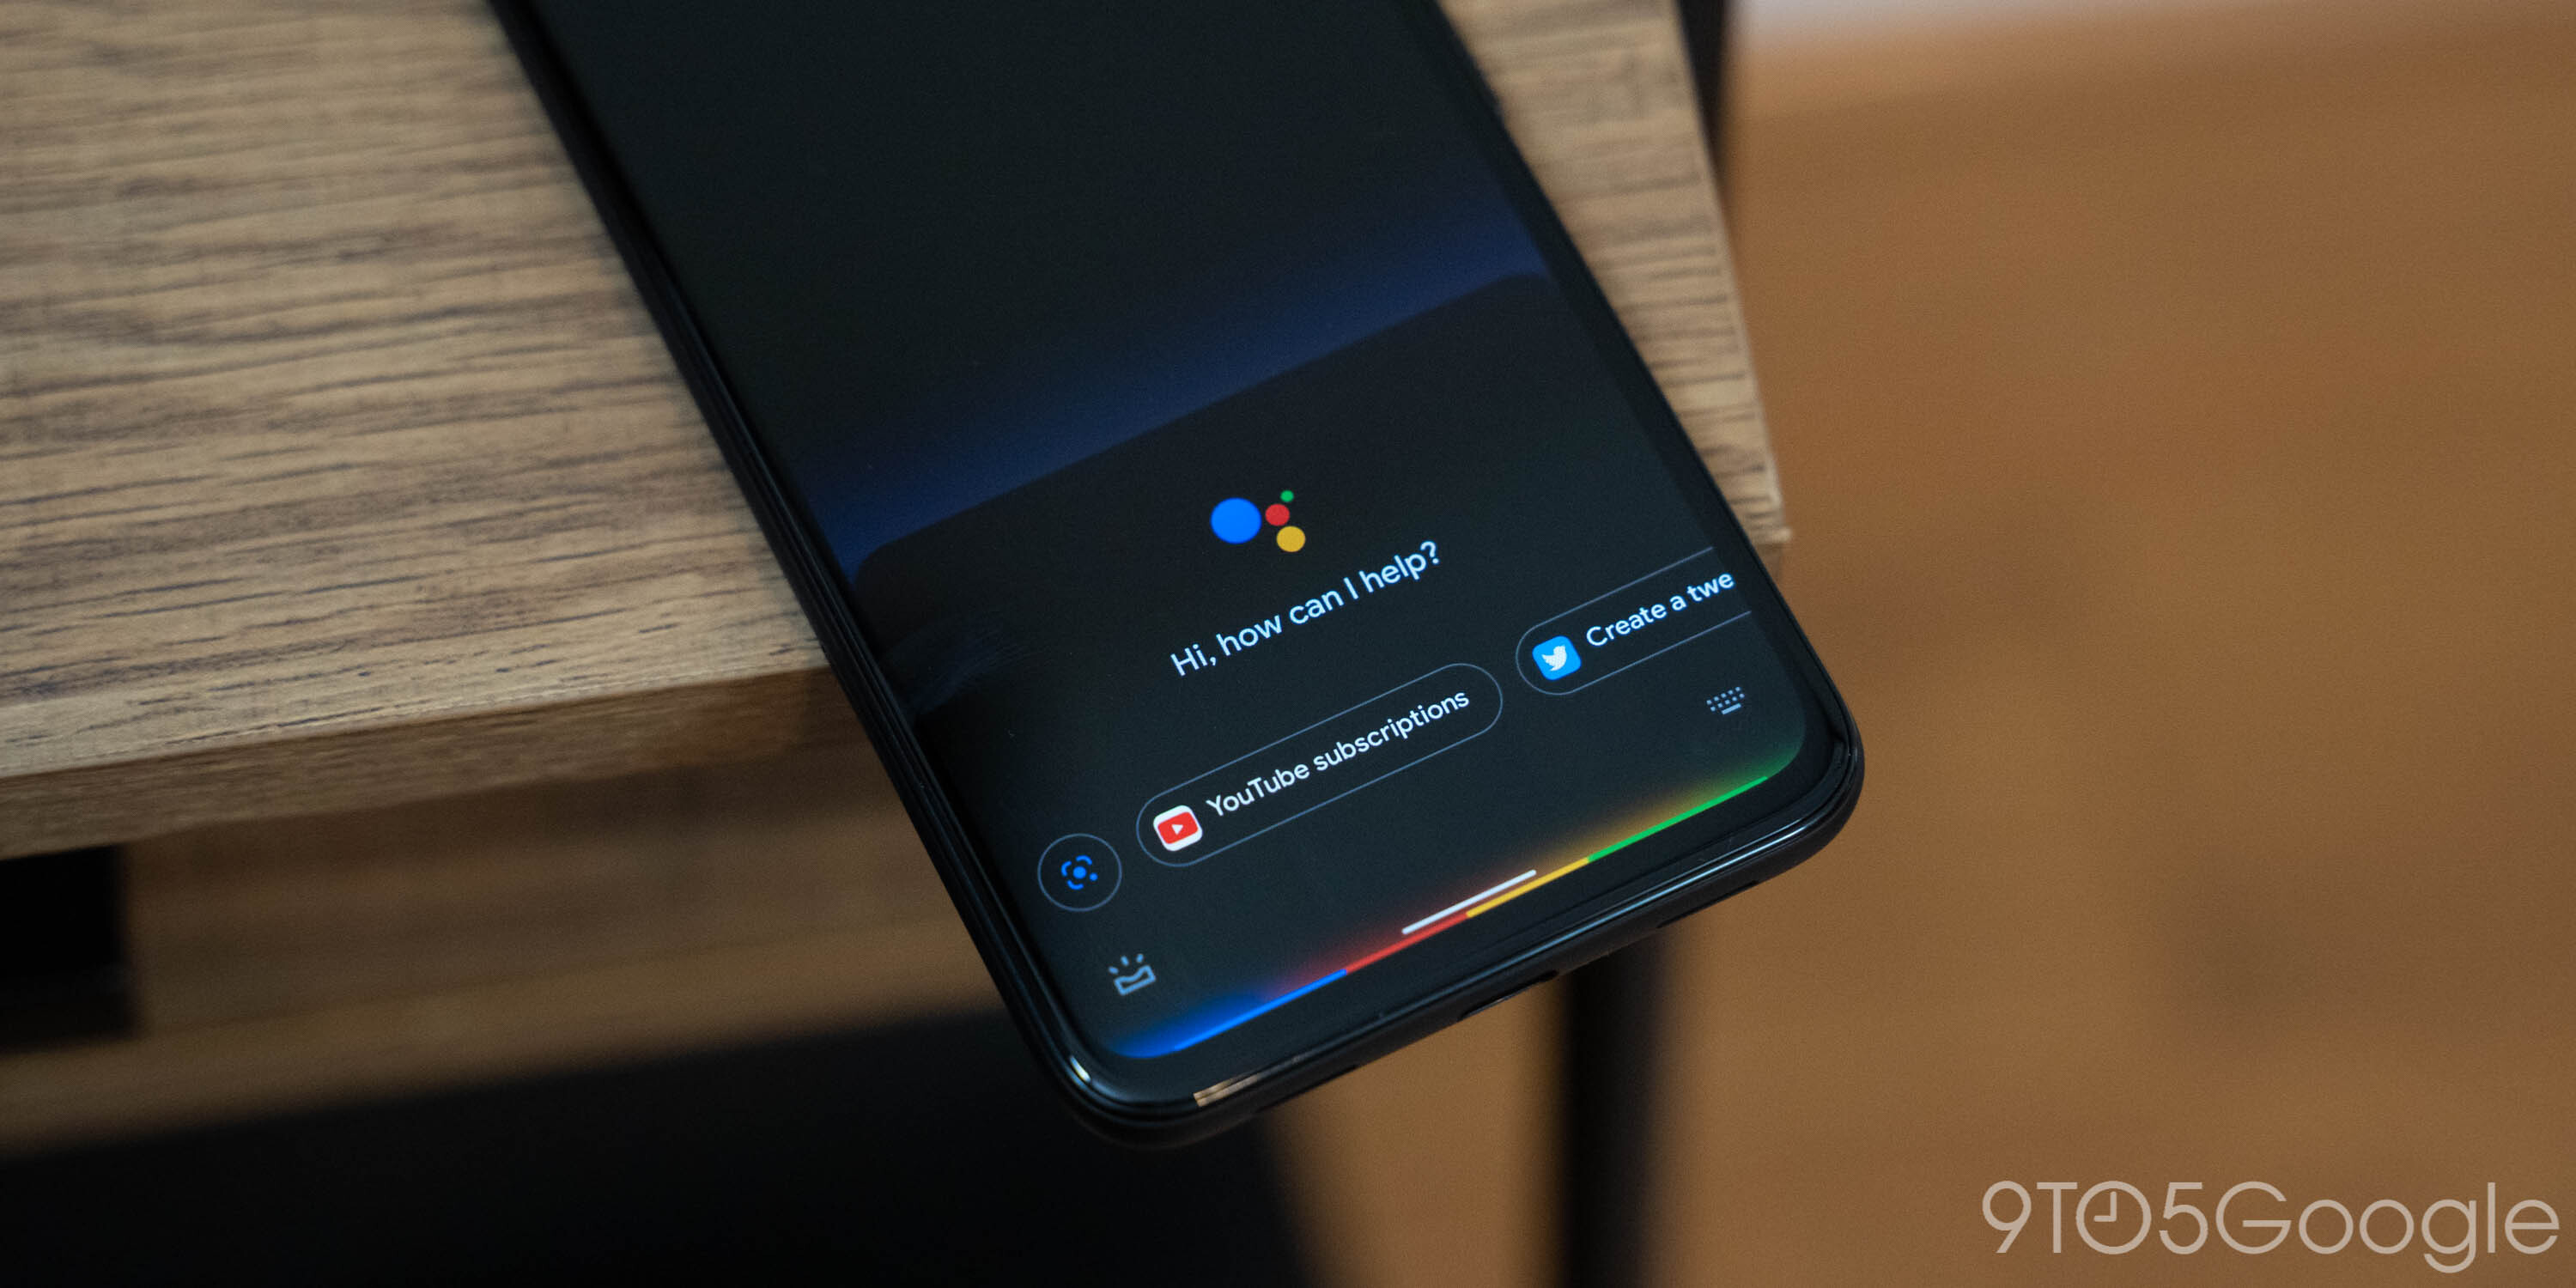 You can now link Fitbit with Google Assistant to ask about last night's sleep